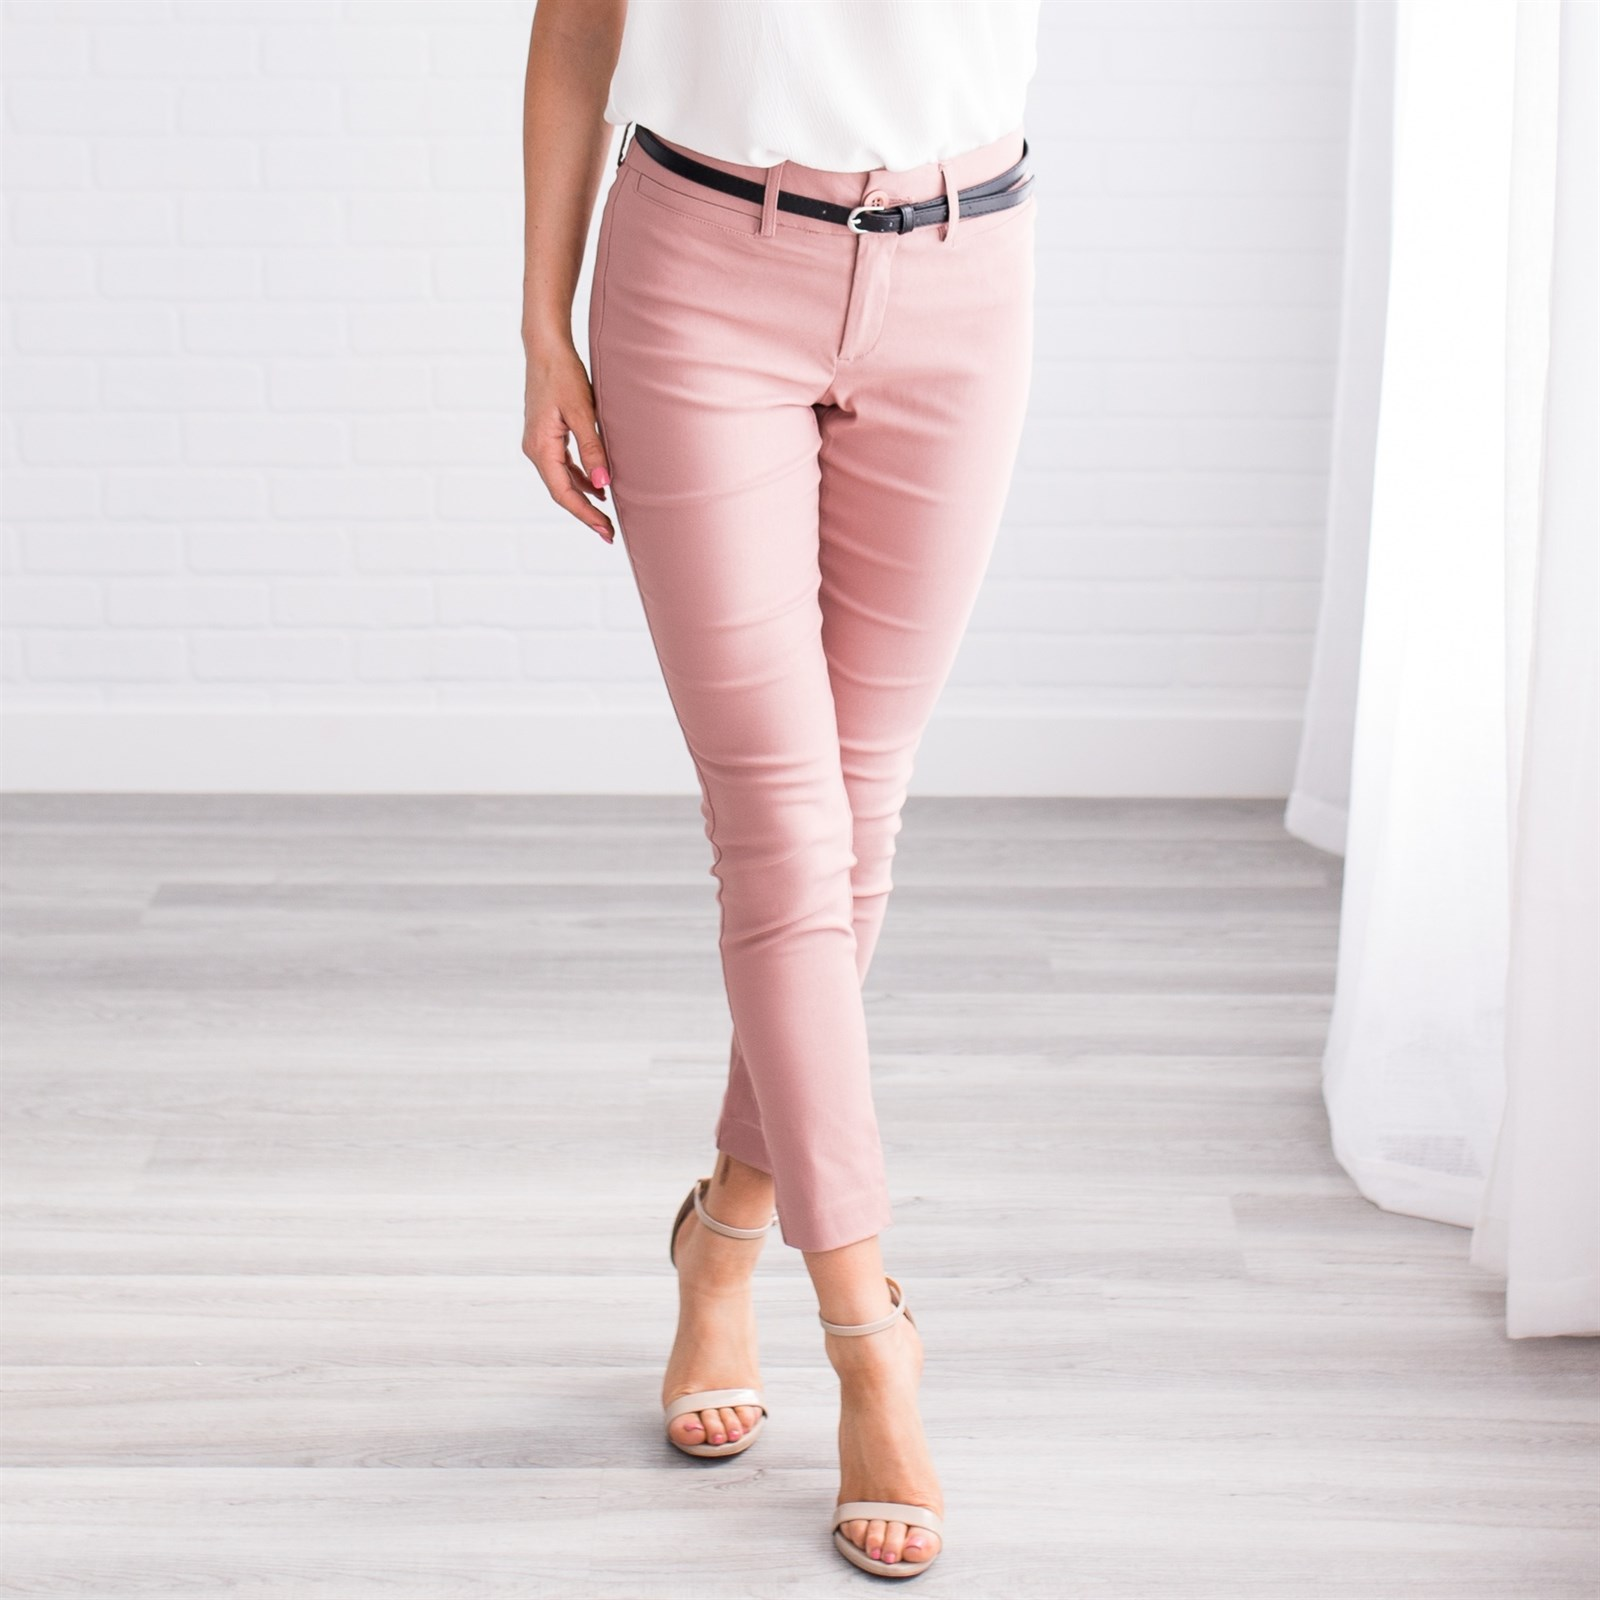 Women's Essential Work Pants Now $19.99 w/ Free Shipping